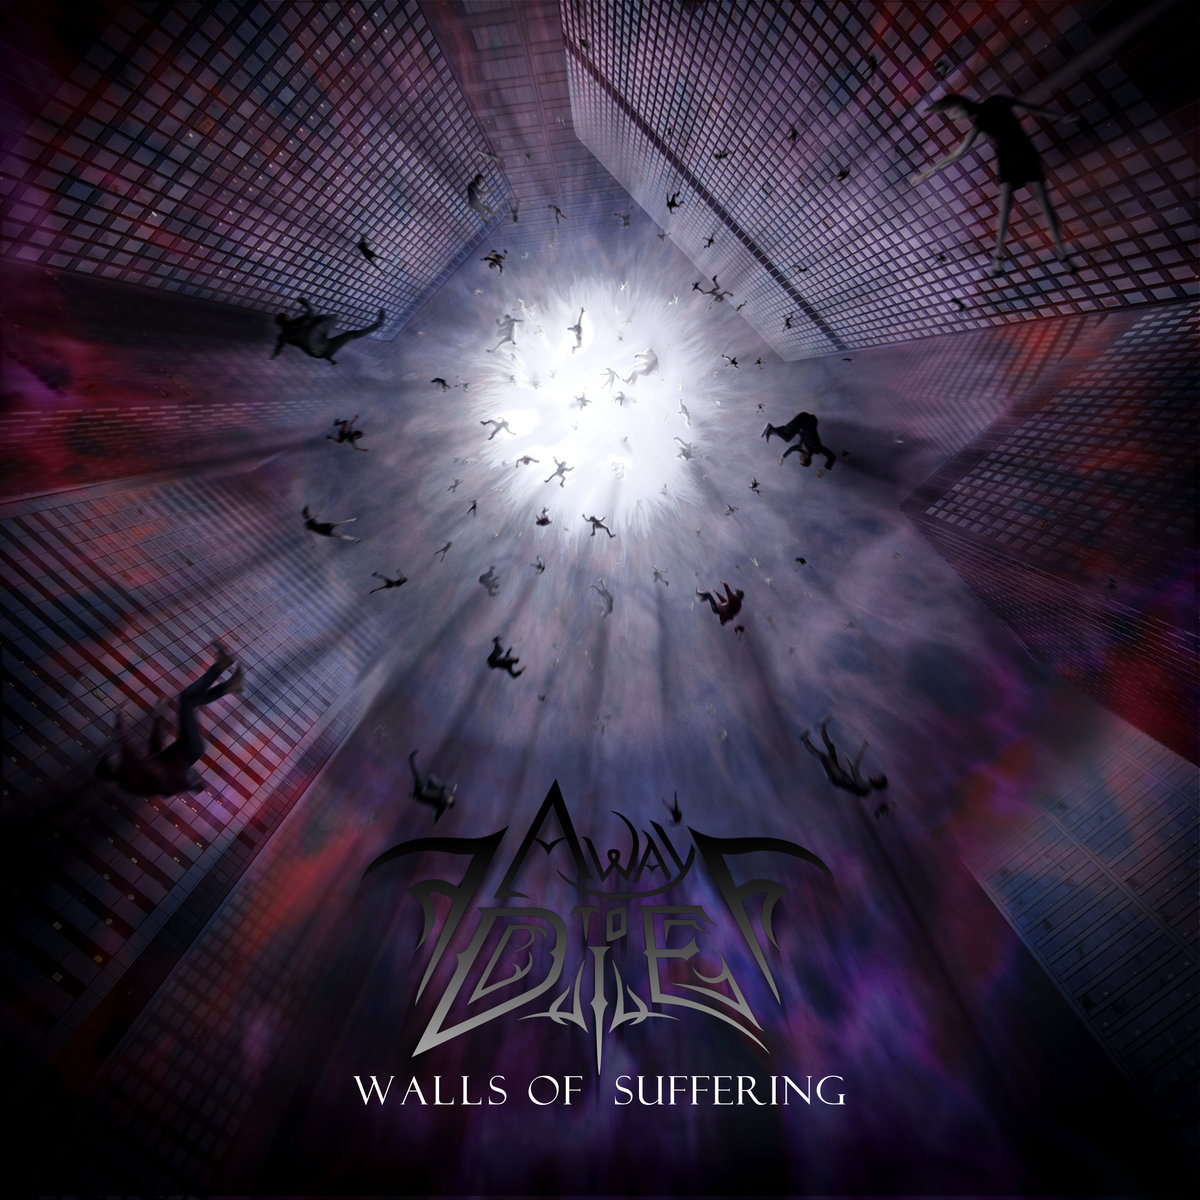 Away To Die - Walls of Suffering [EP] (2018)